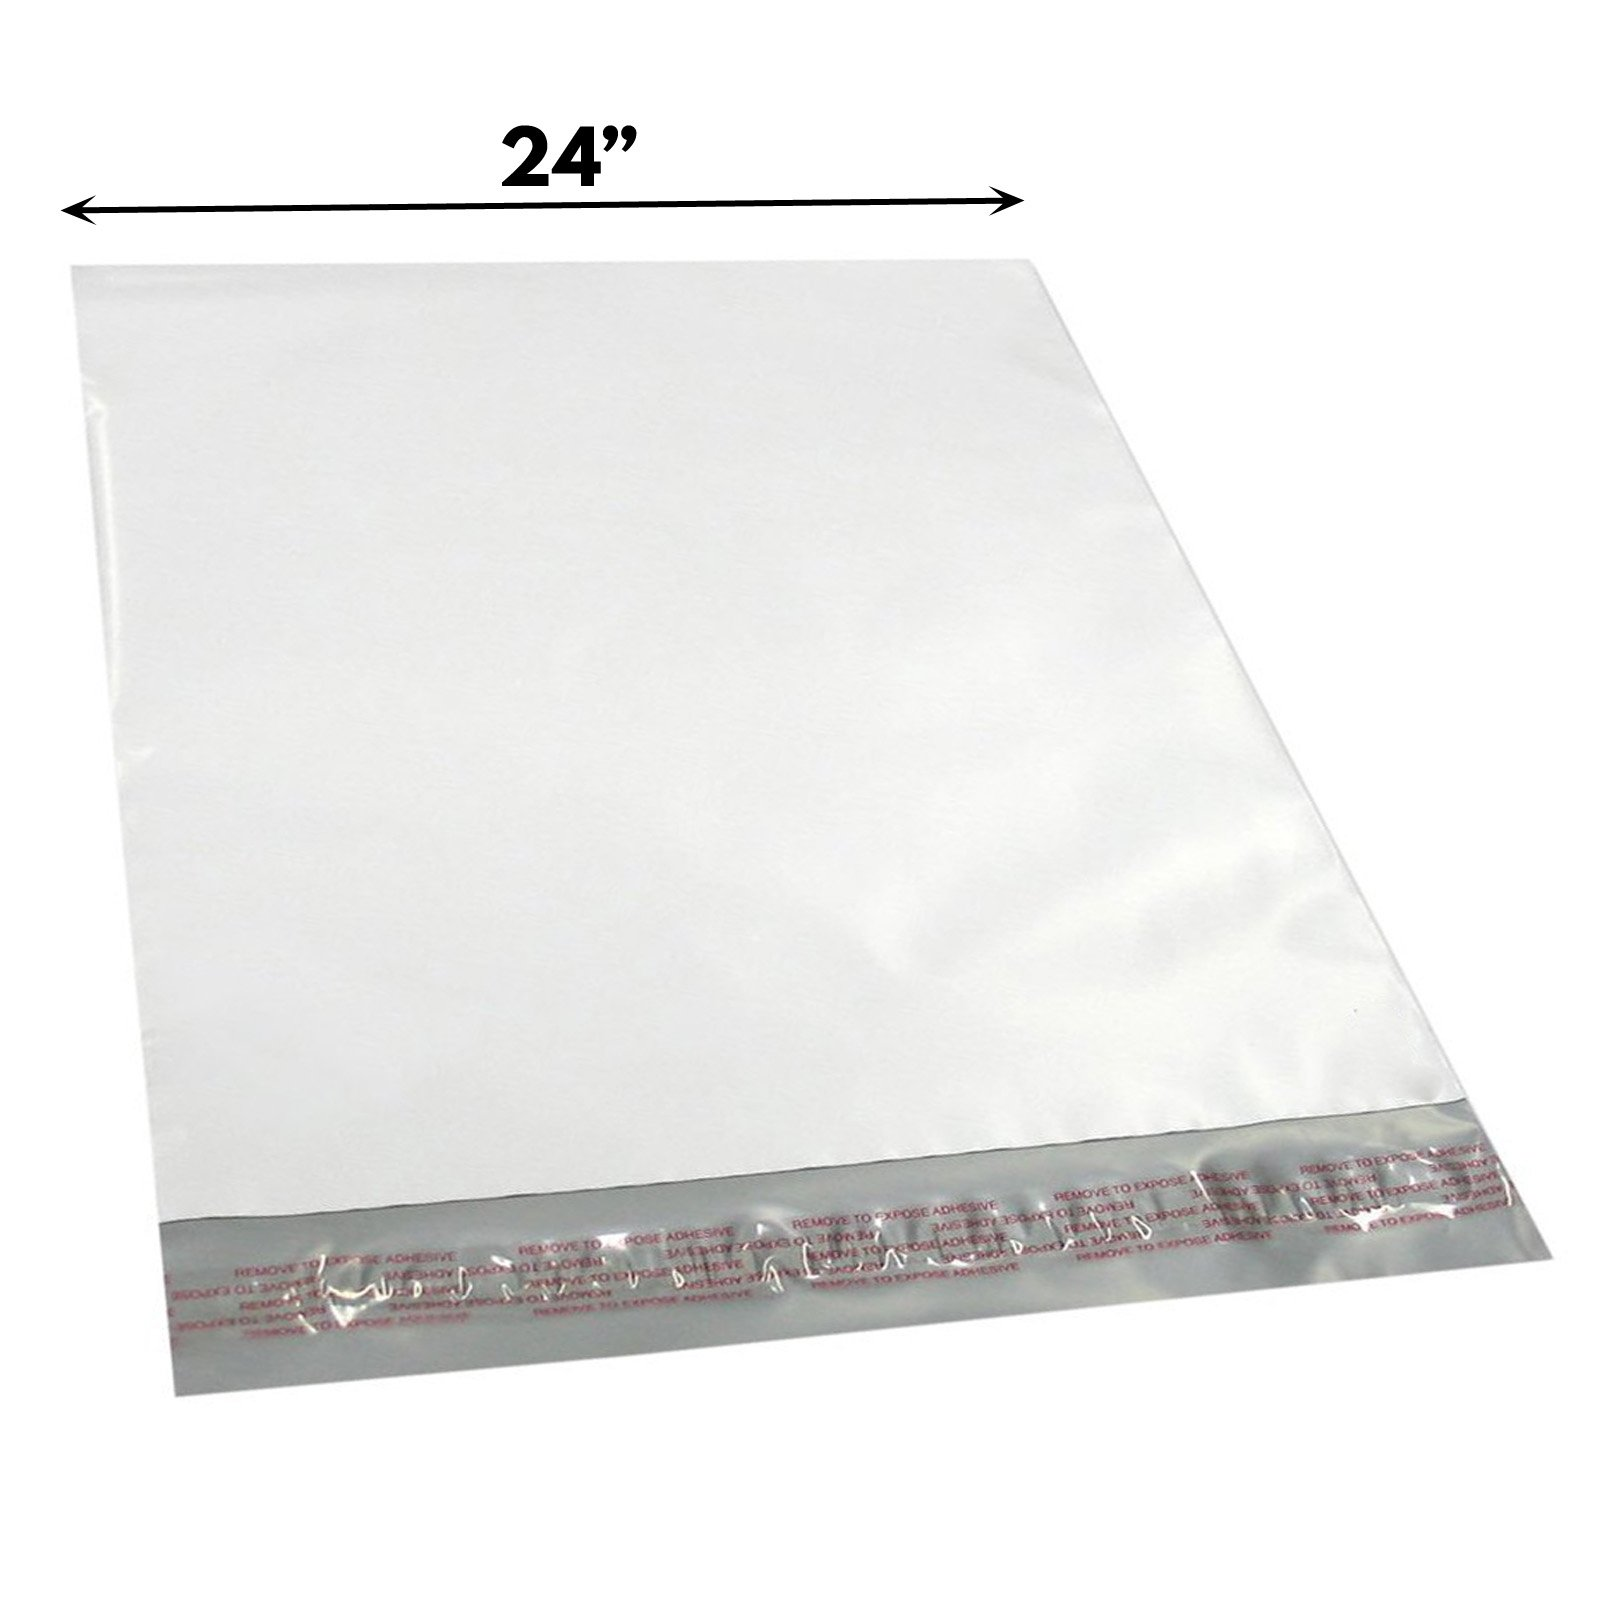 100pc Wholesale Polymailer Envelope Shipping Mailers Postal Bags 24 x 24 Inch